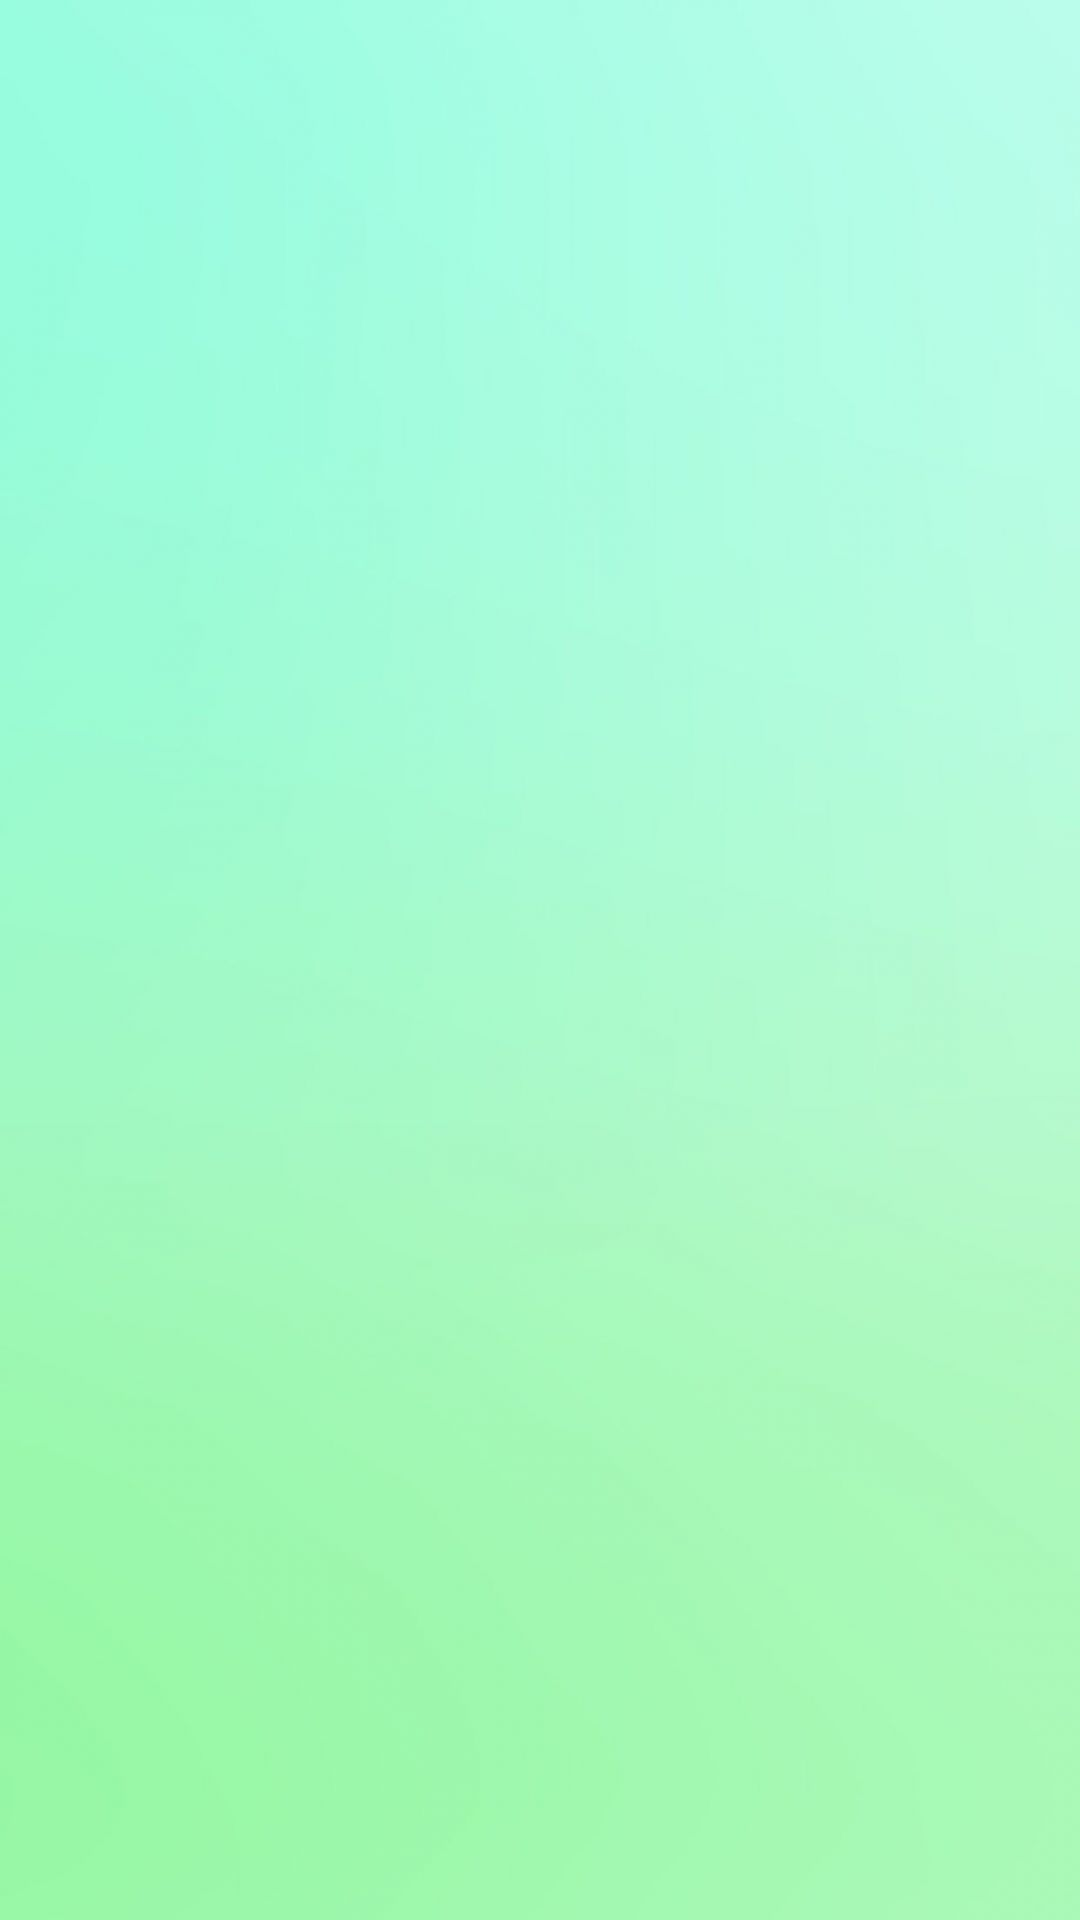 Mint Green Aesthetic HD Wallpapers (Desktop Background / Android / iPhone) (1080p, 4k) (34996) - 3D / Abstract